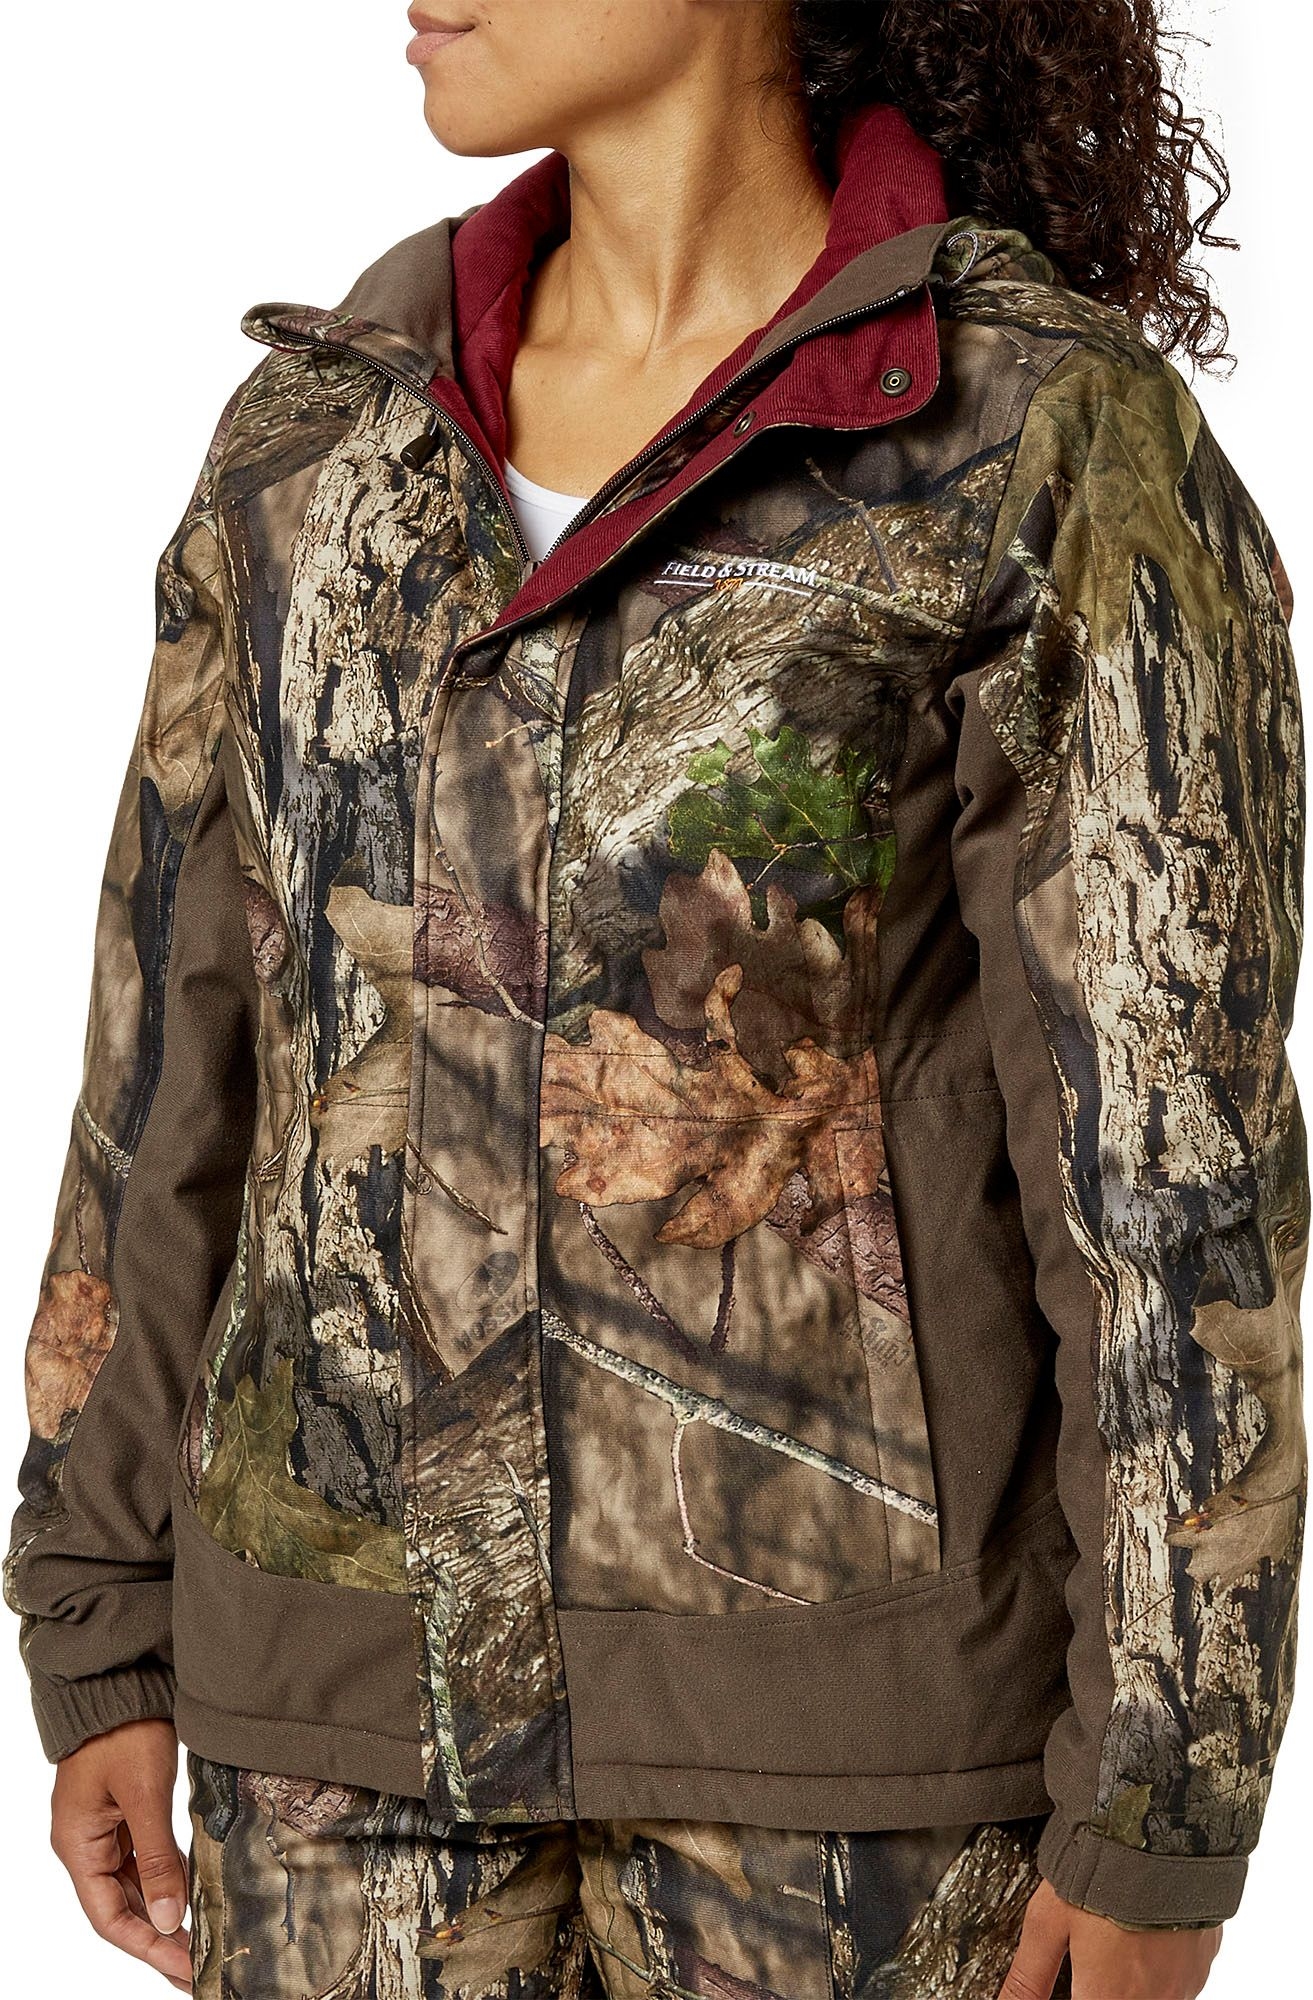 Field & Stream Women's True Pursuit Insulated Hunting Jacket, Size: Small, Mossy Oak Country thumbnail